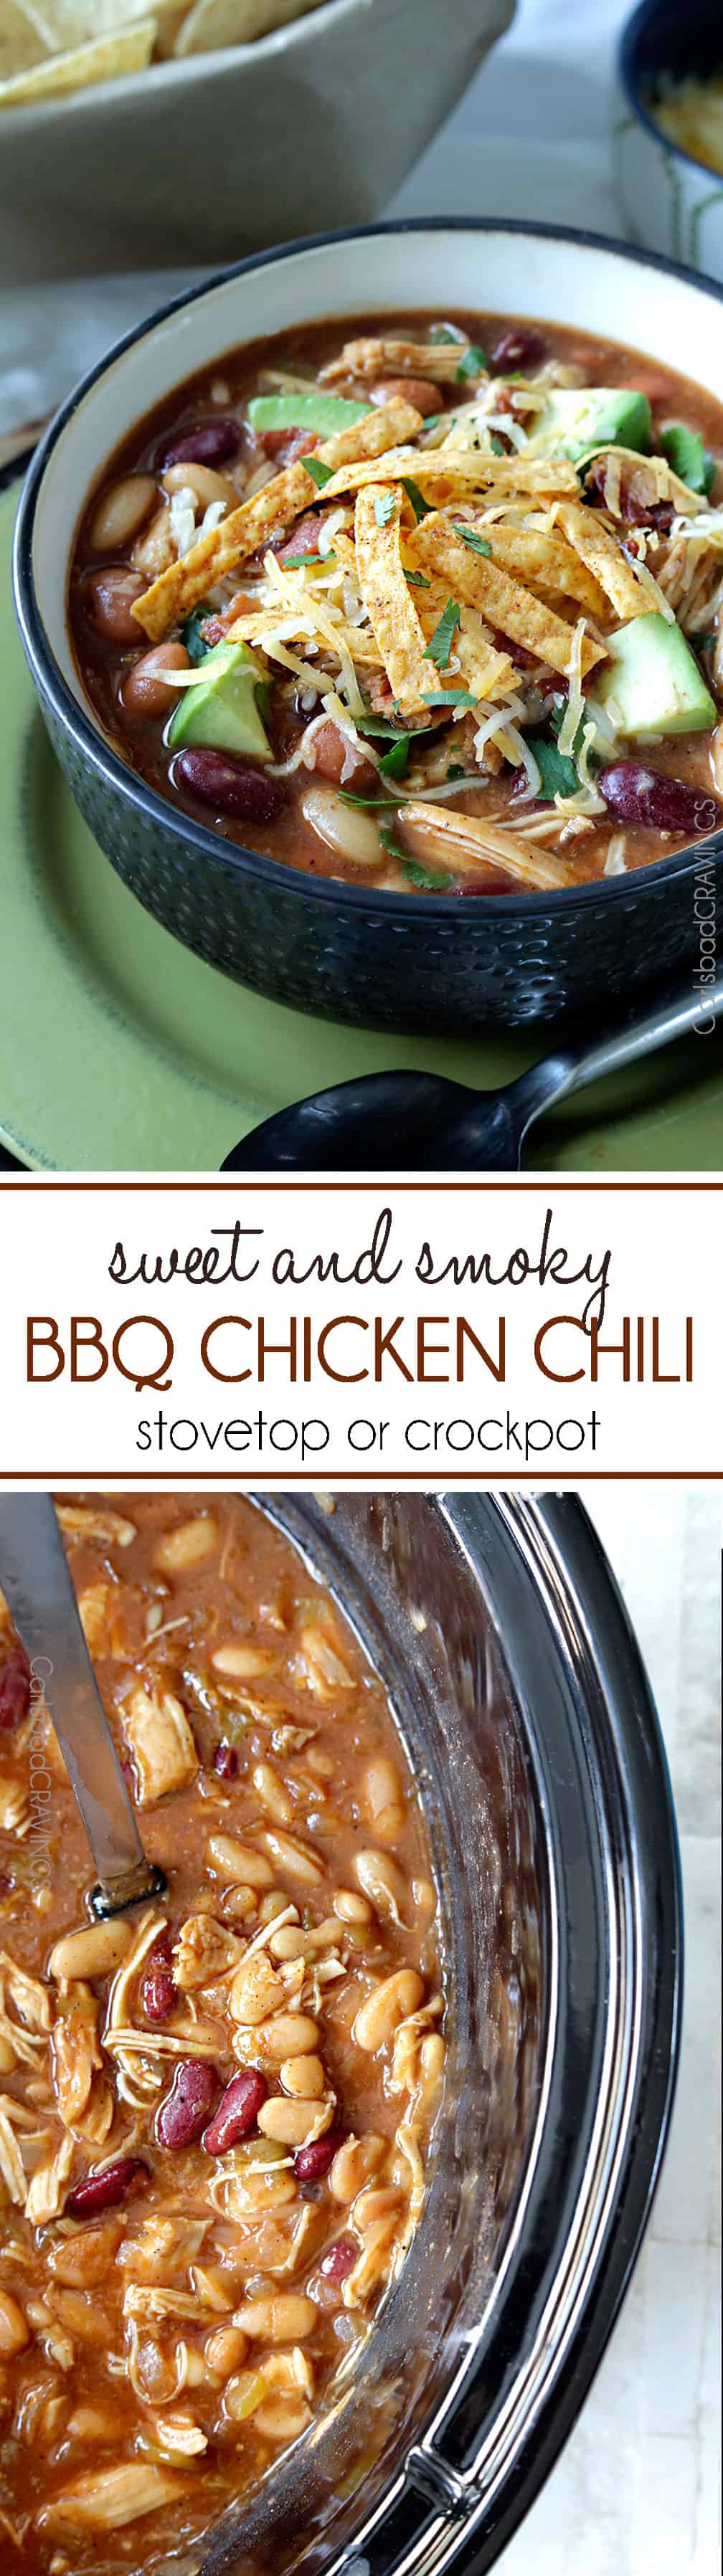 Sweet and Smoky BBQ Chicken Chili is guaranteed to become a family fav! Easy to make in the crockpot or stovetop.